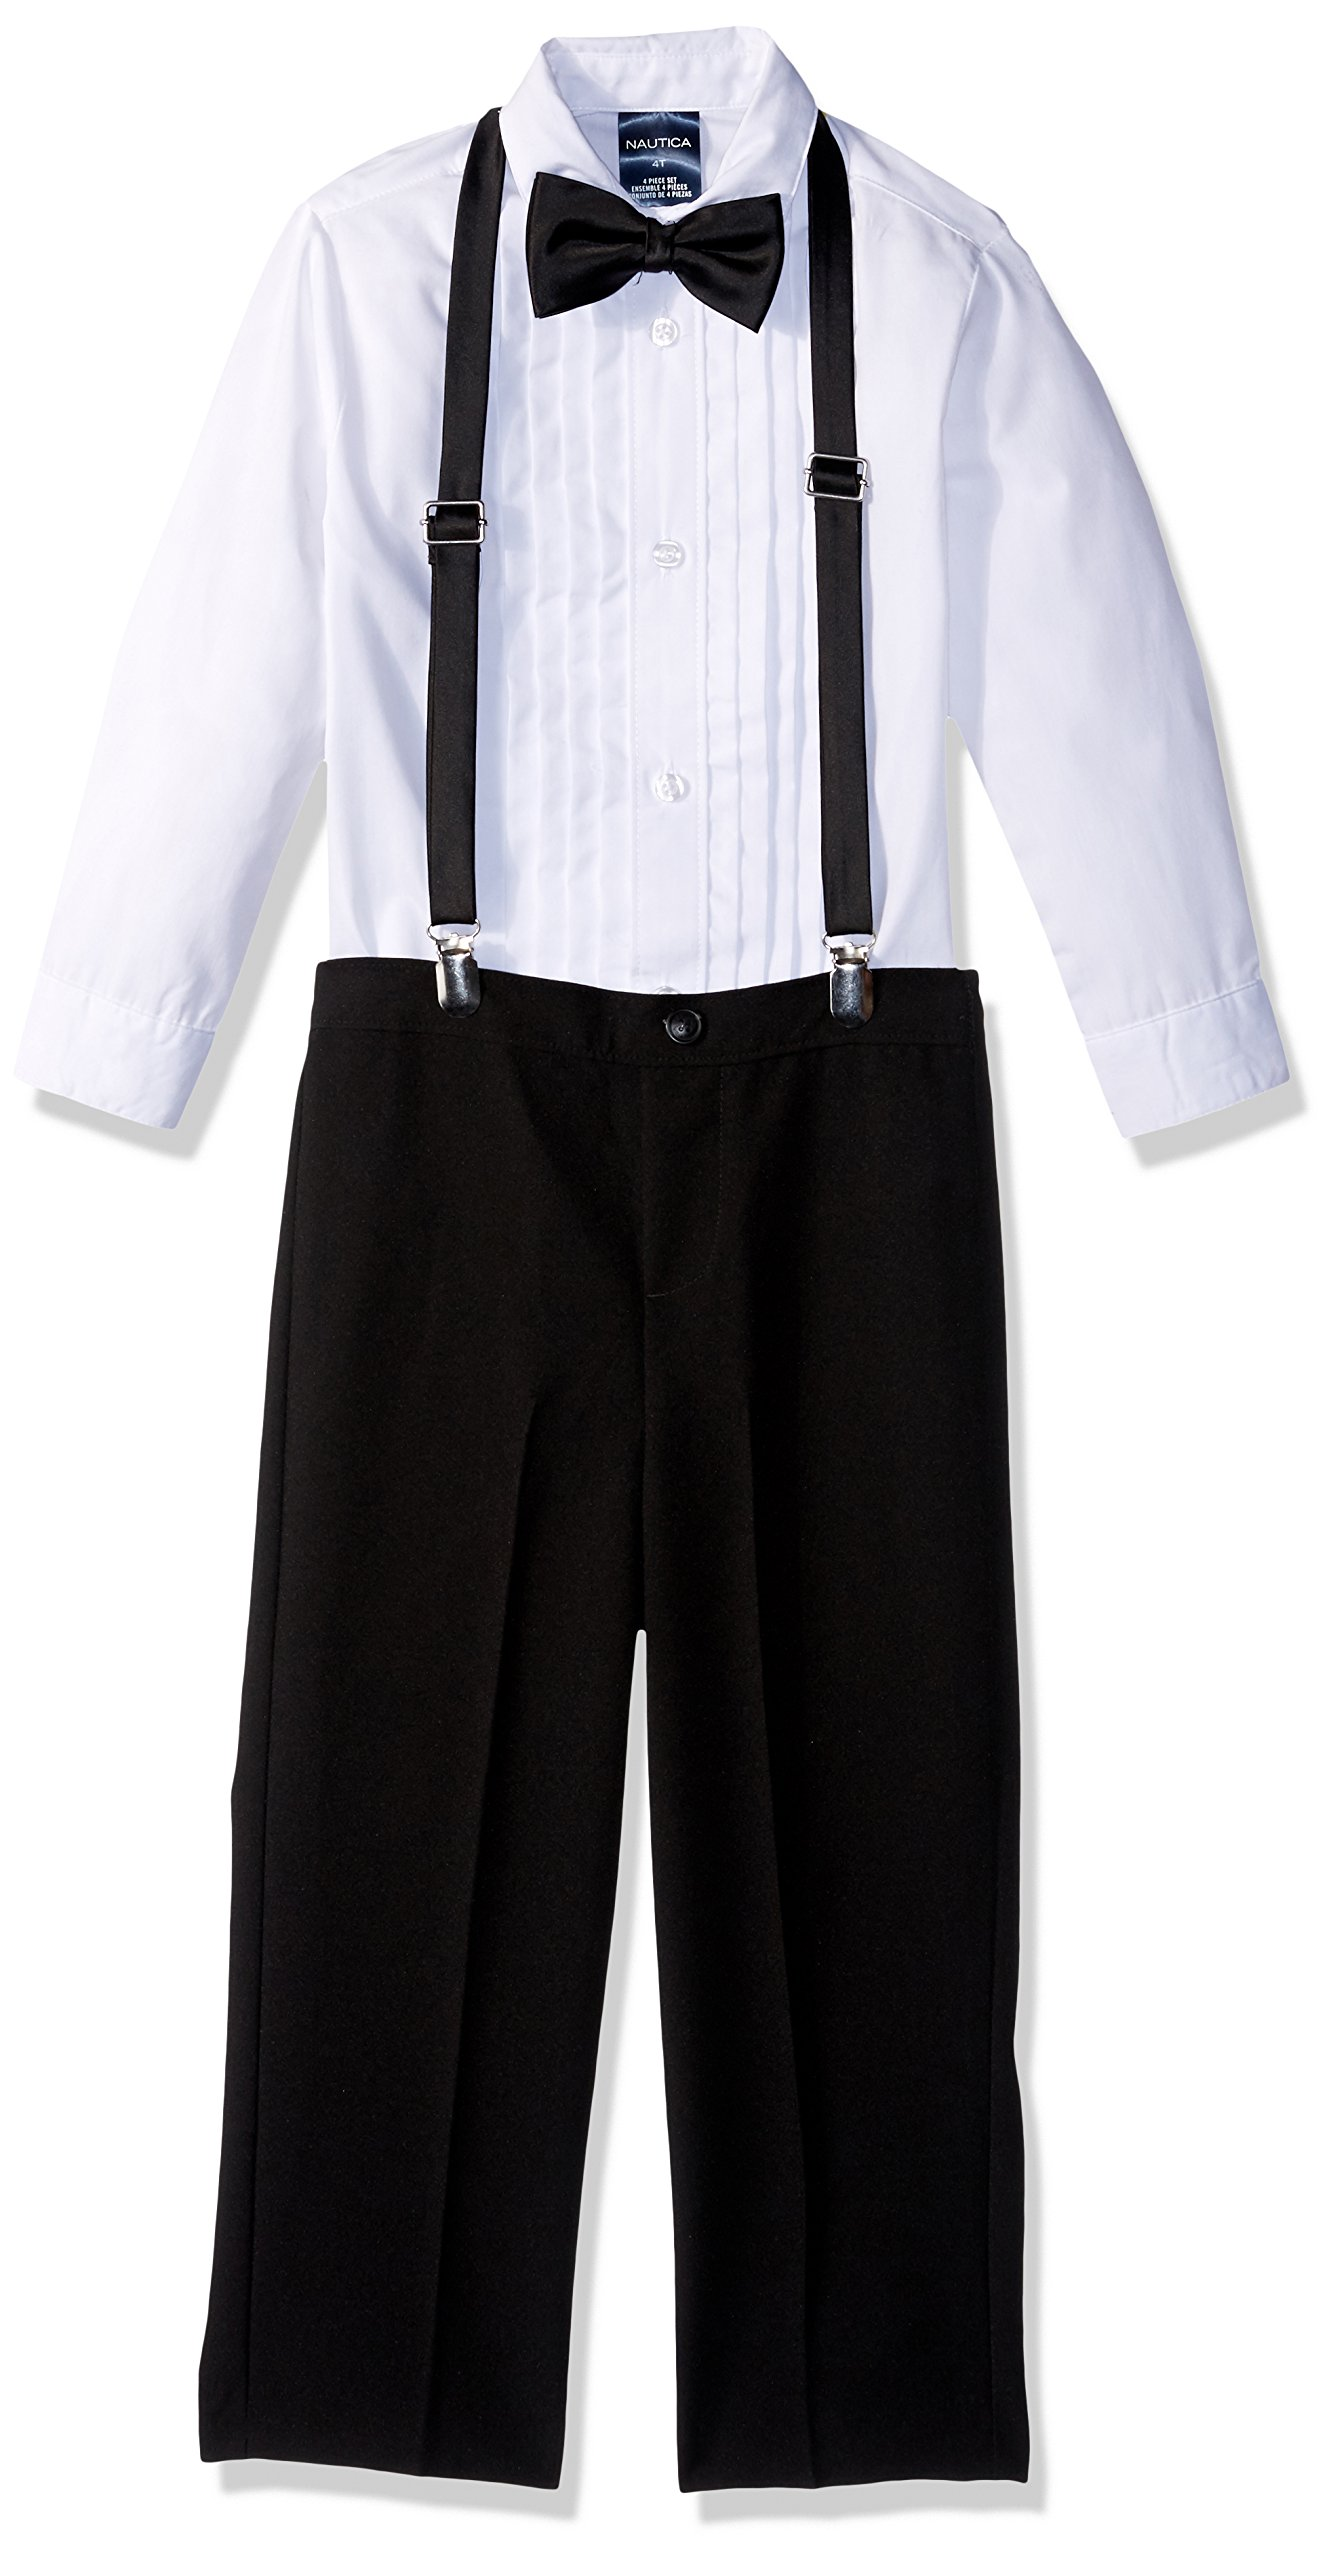 Nautica Boys' Little Set with Shirt, Pant, Suspenders, and Bow Tie, Black Tuxedo, 7